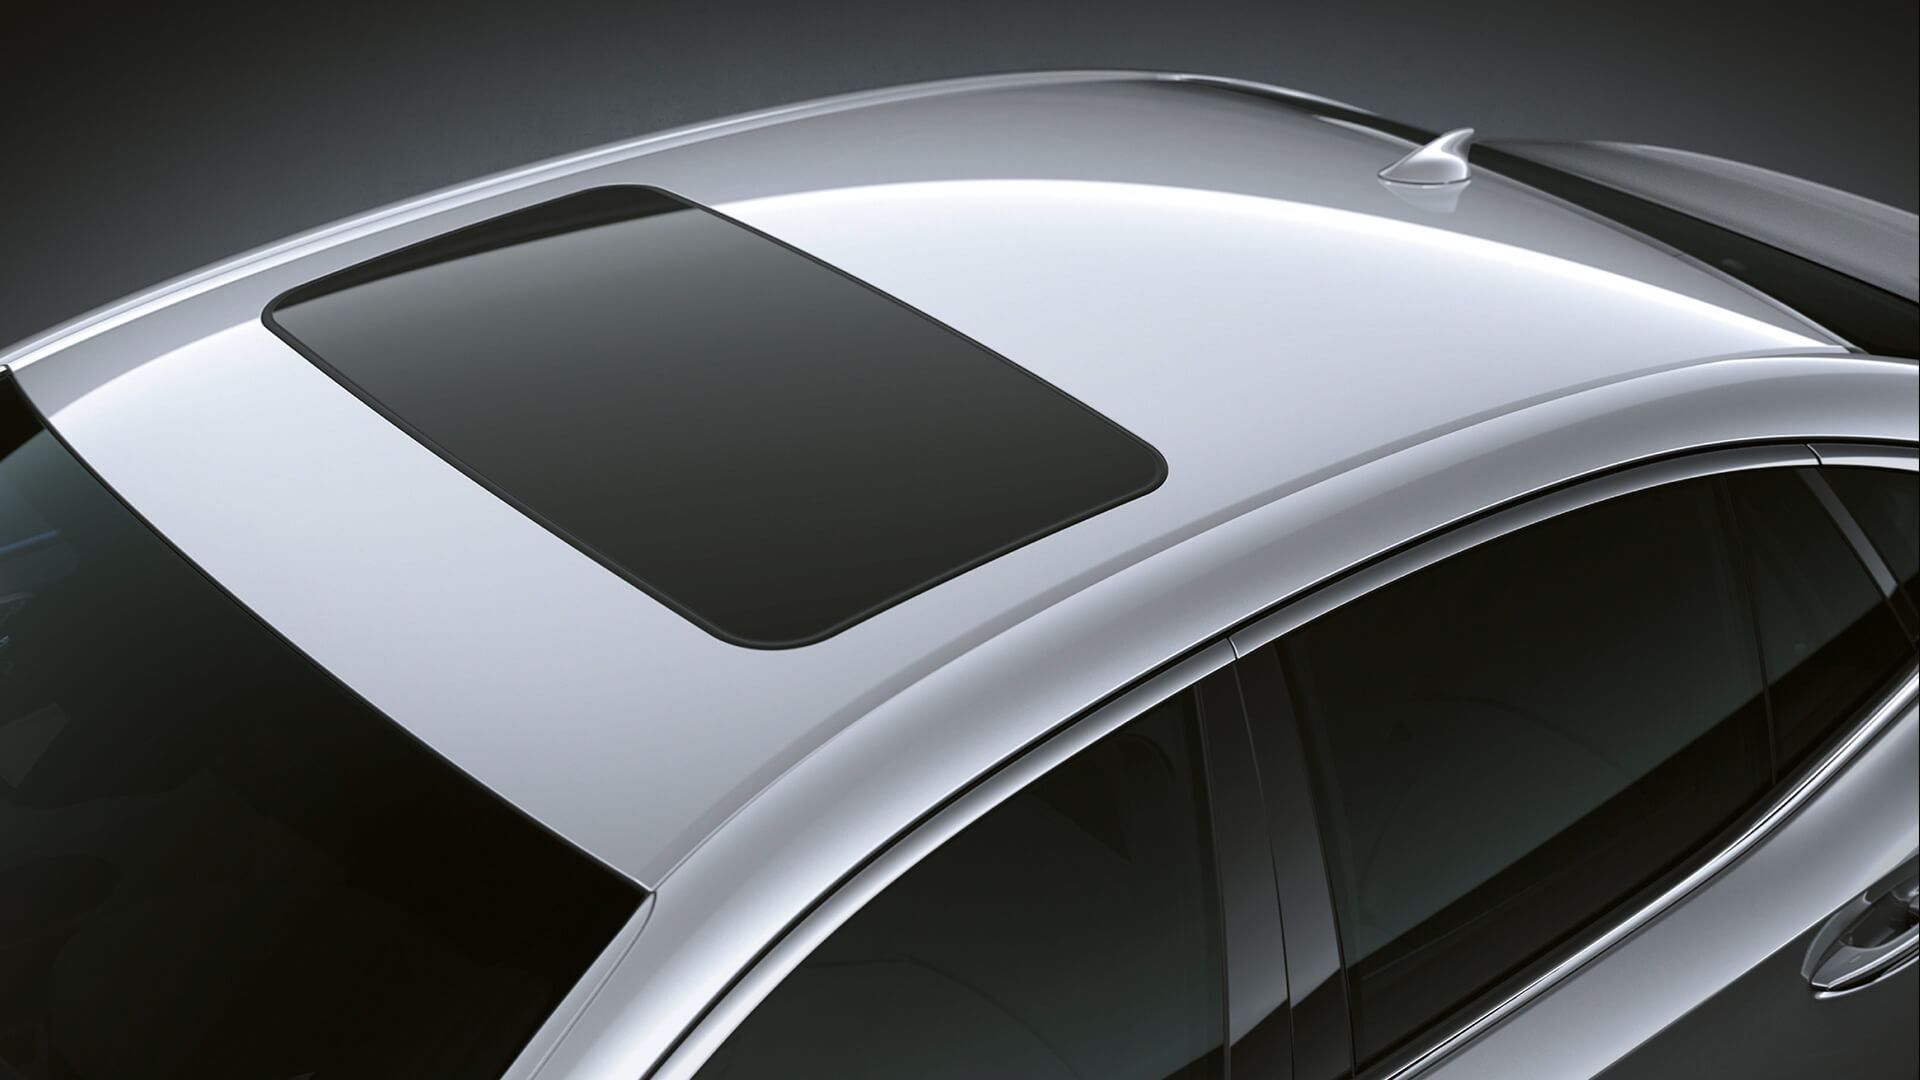 2018 lexus ls features sunroof